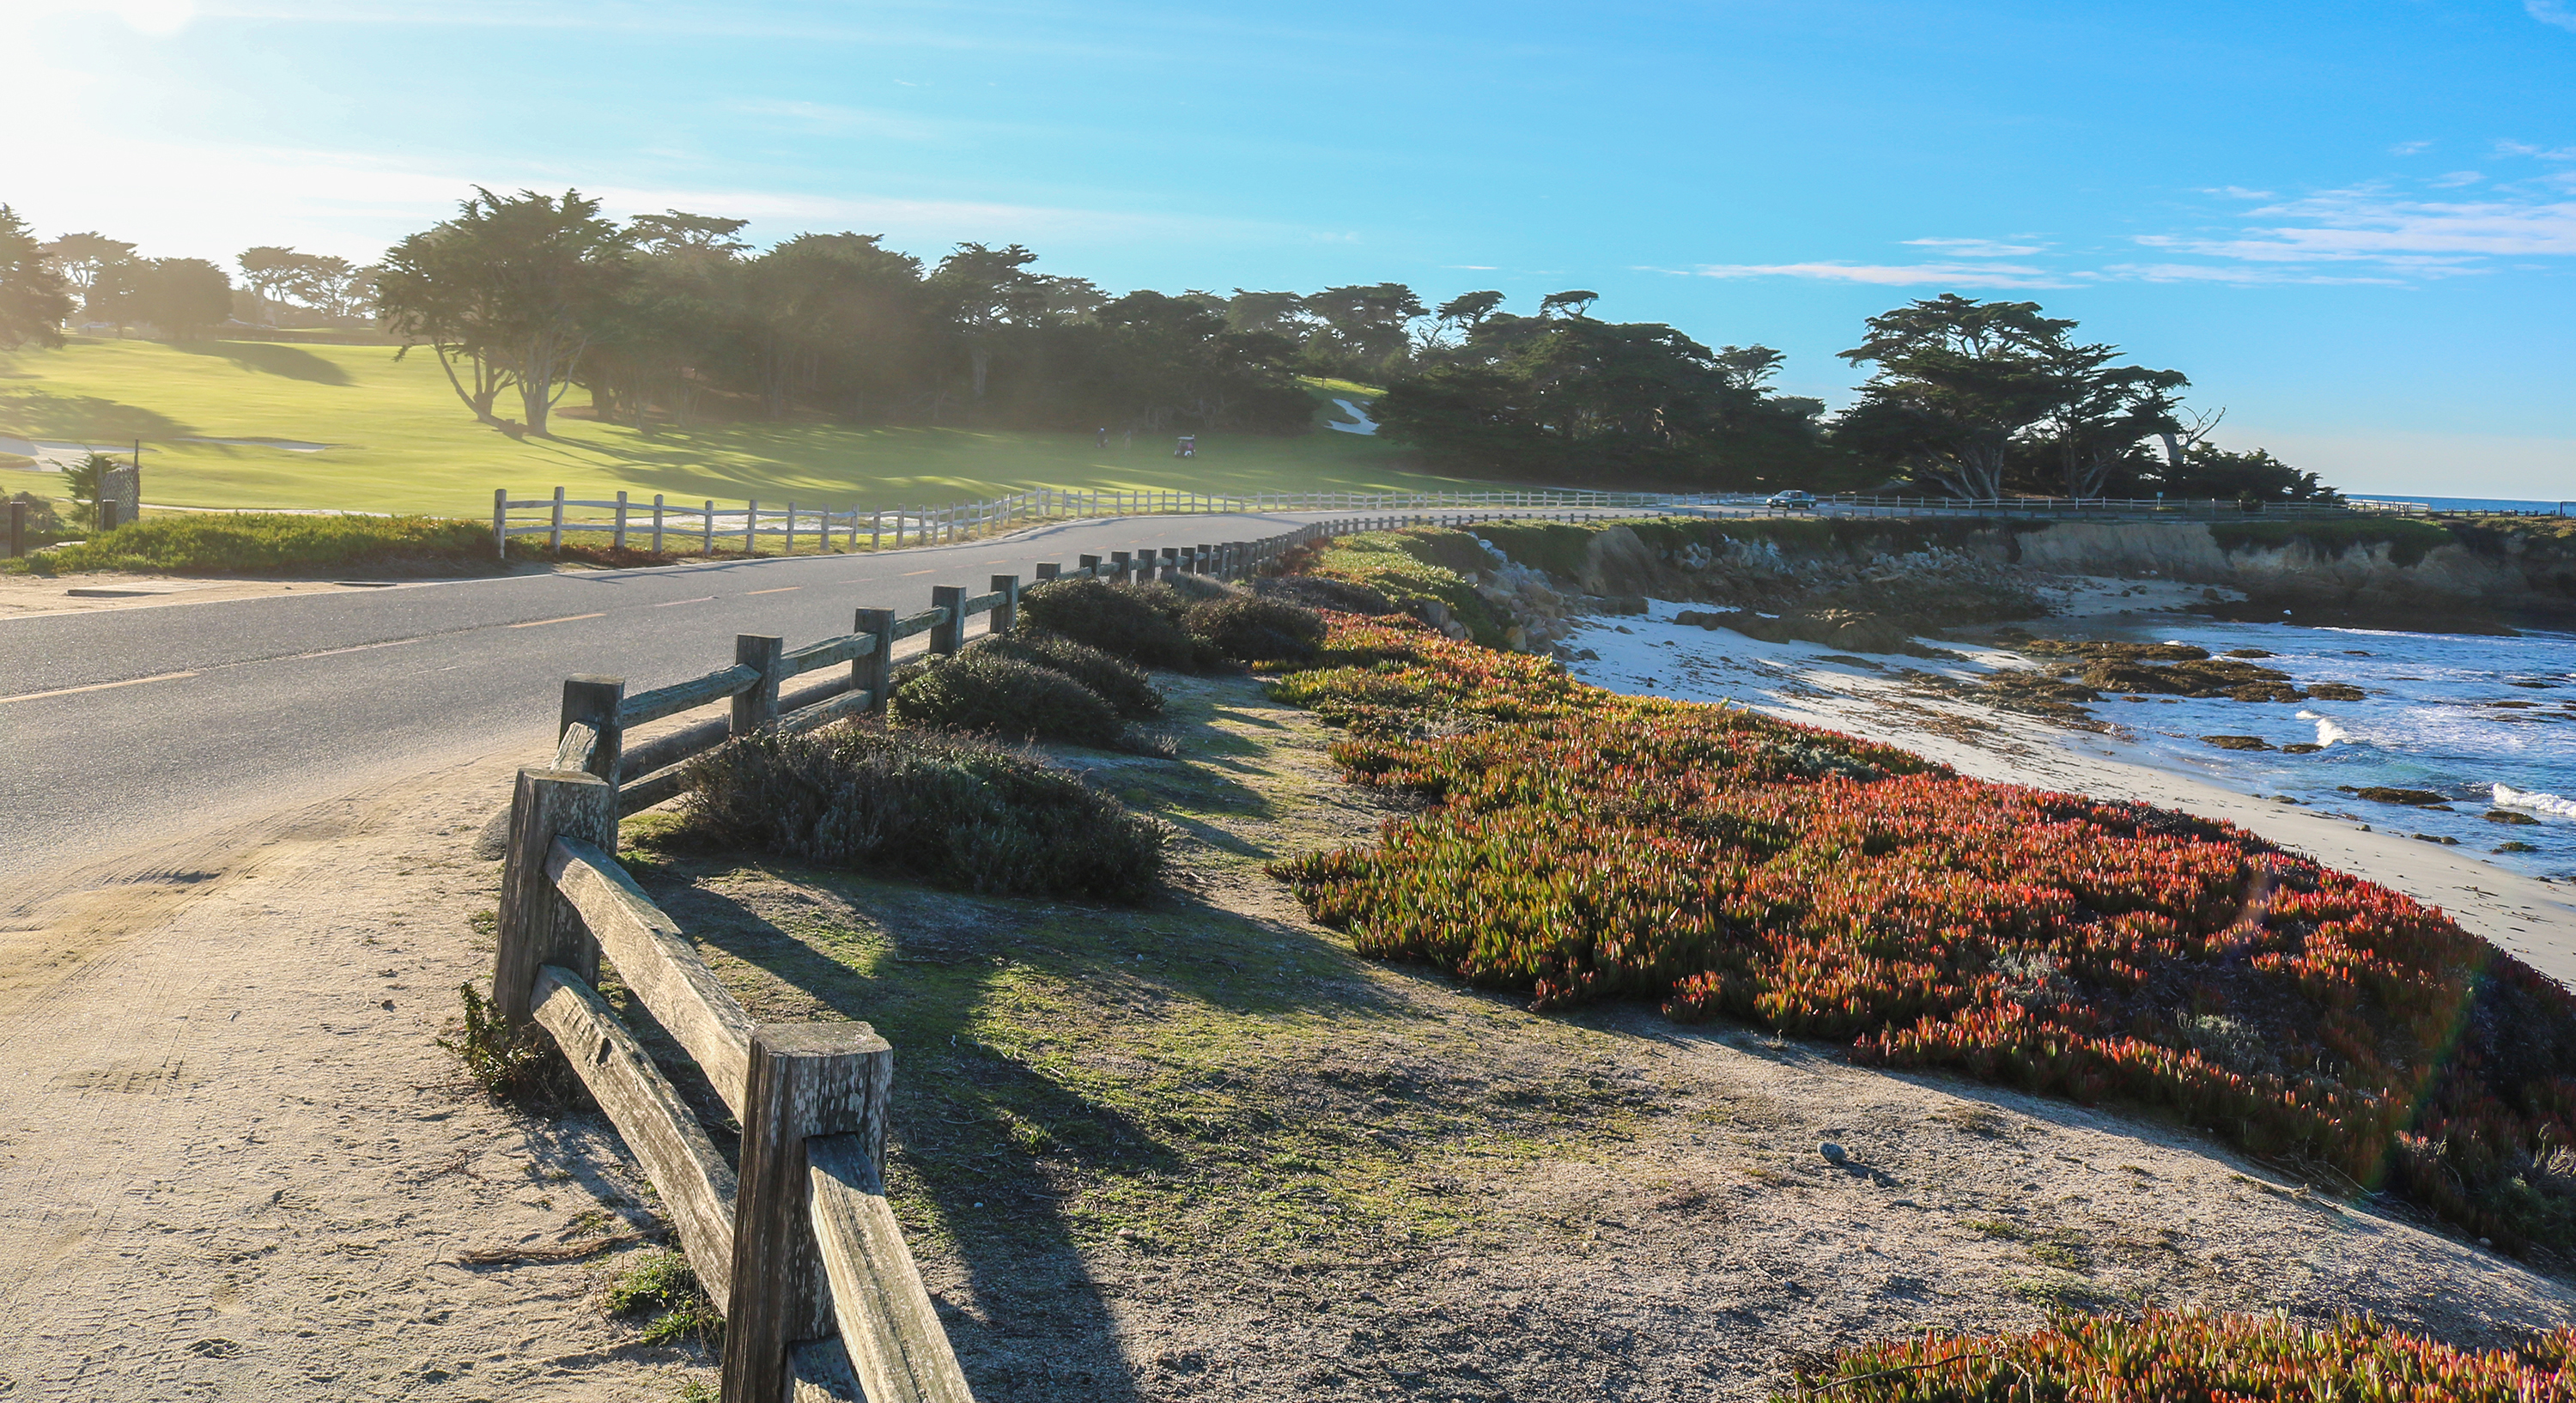 The Vineyard Vines Half Marathon At Pebble Beach Resort Races - 7 unforgettable backdrops on californias 17 mile drive